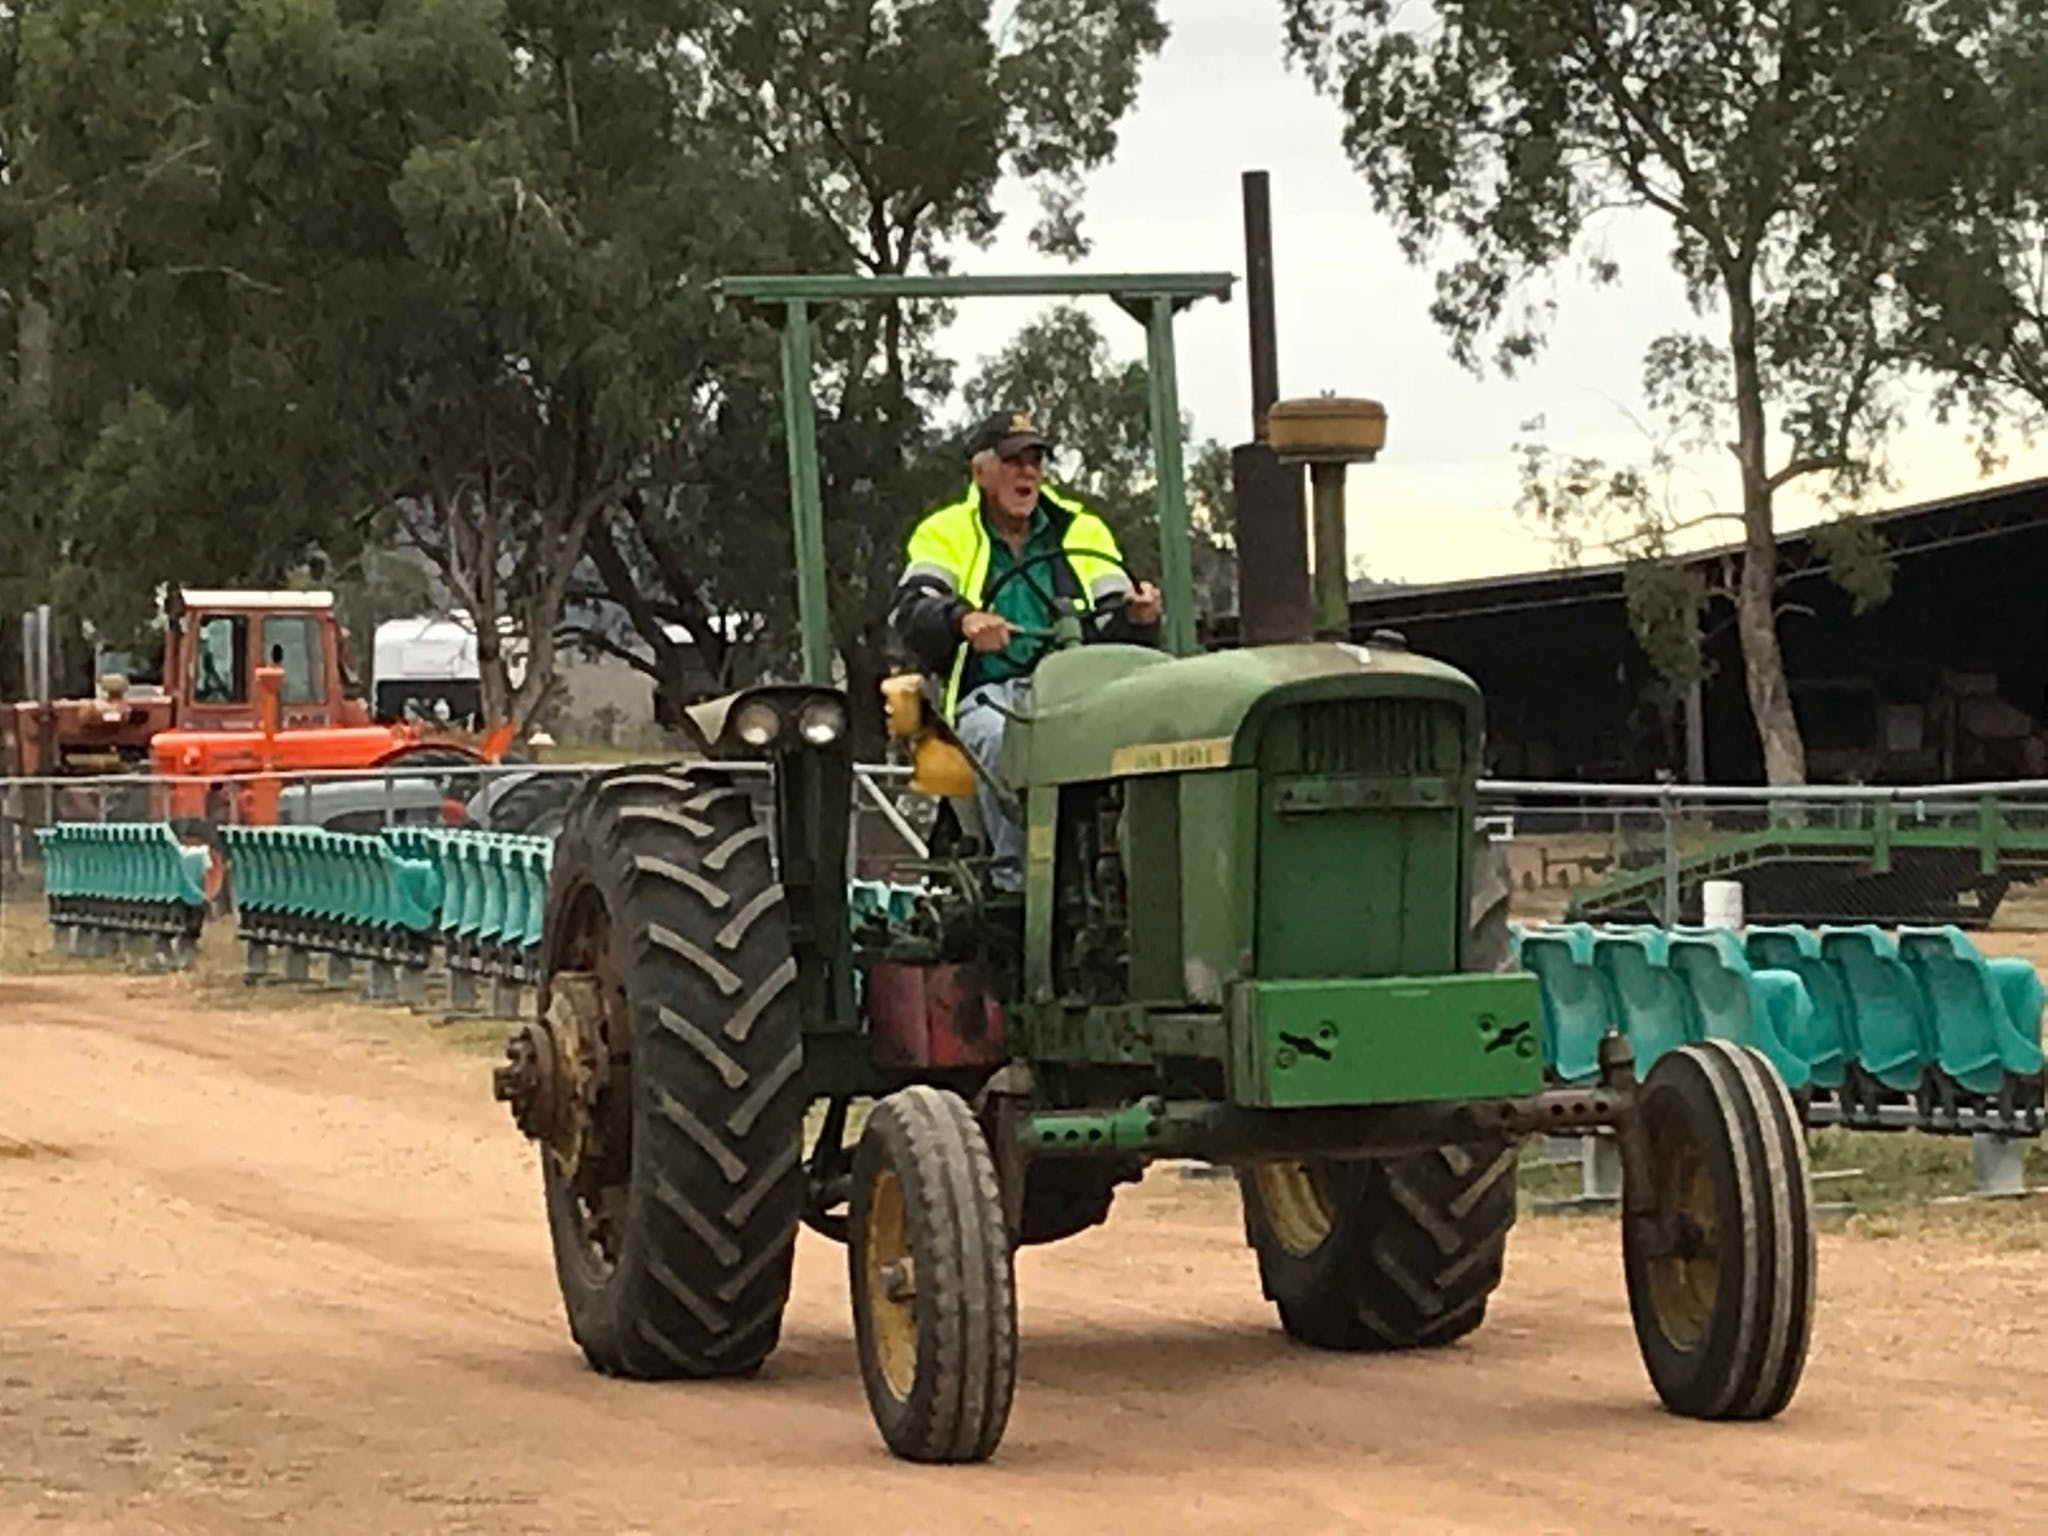 Liverpool Plains Wheels in Motion - Accommodation Perth